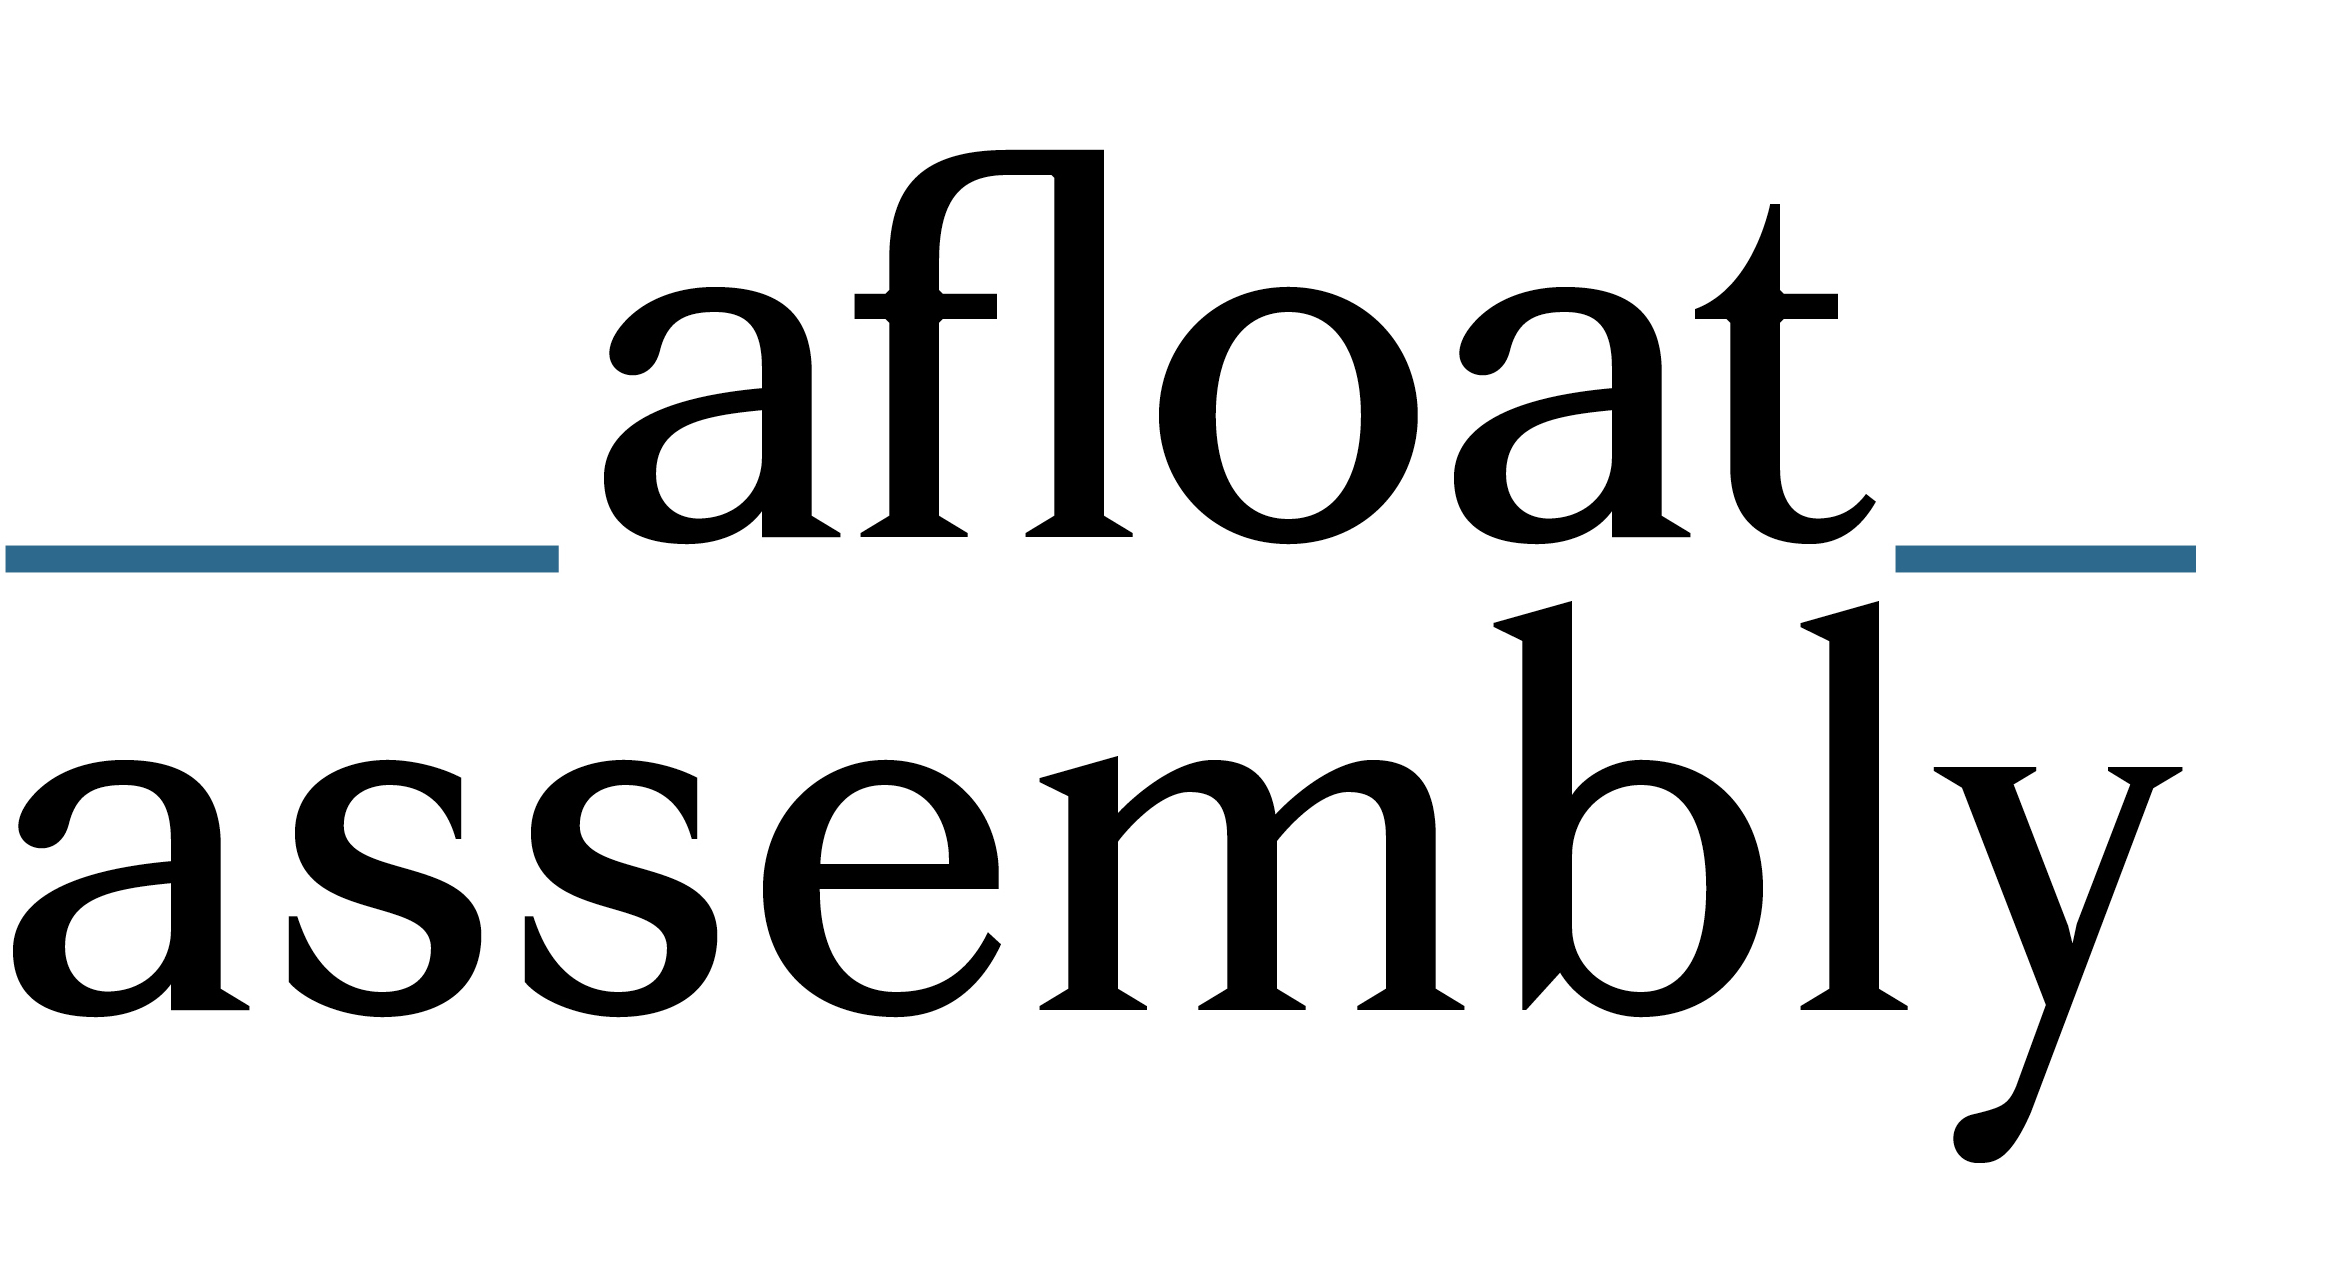 afloat assembly